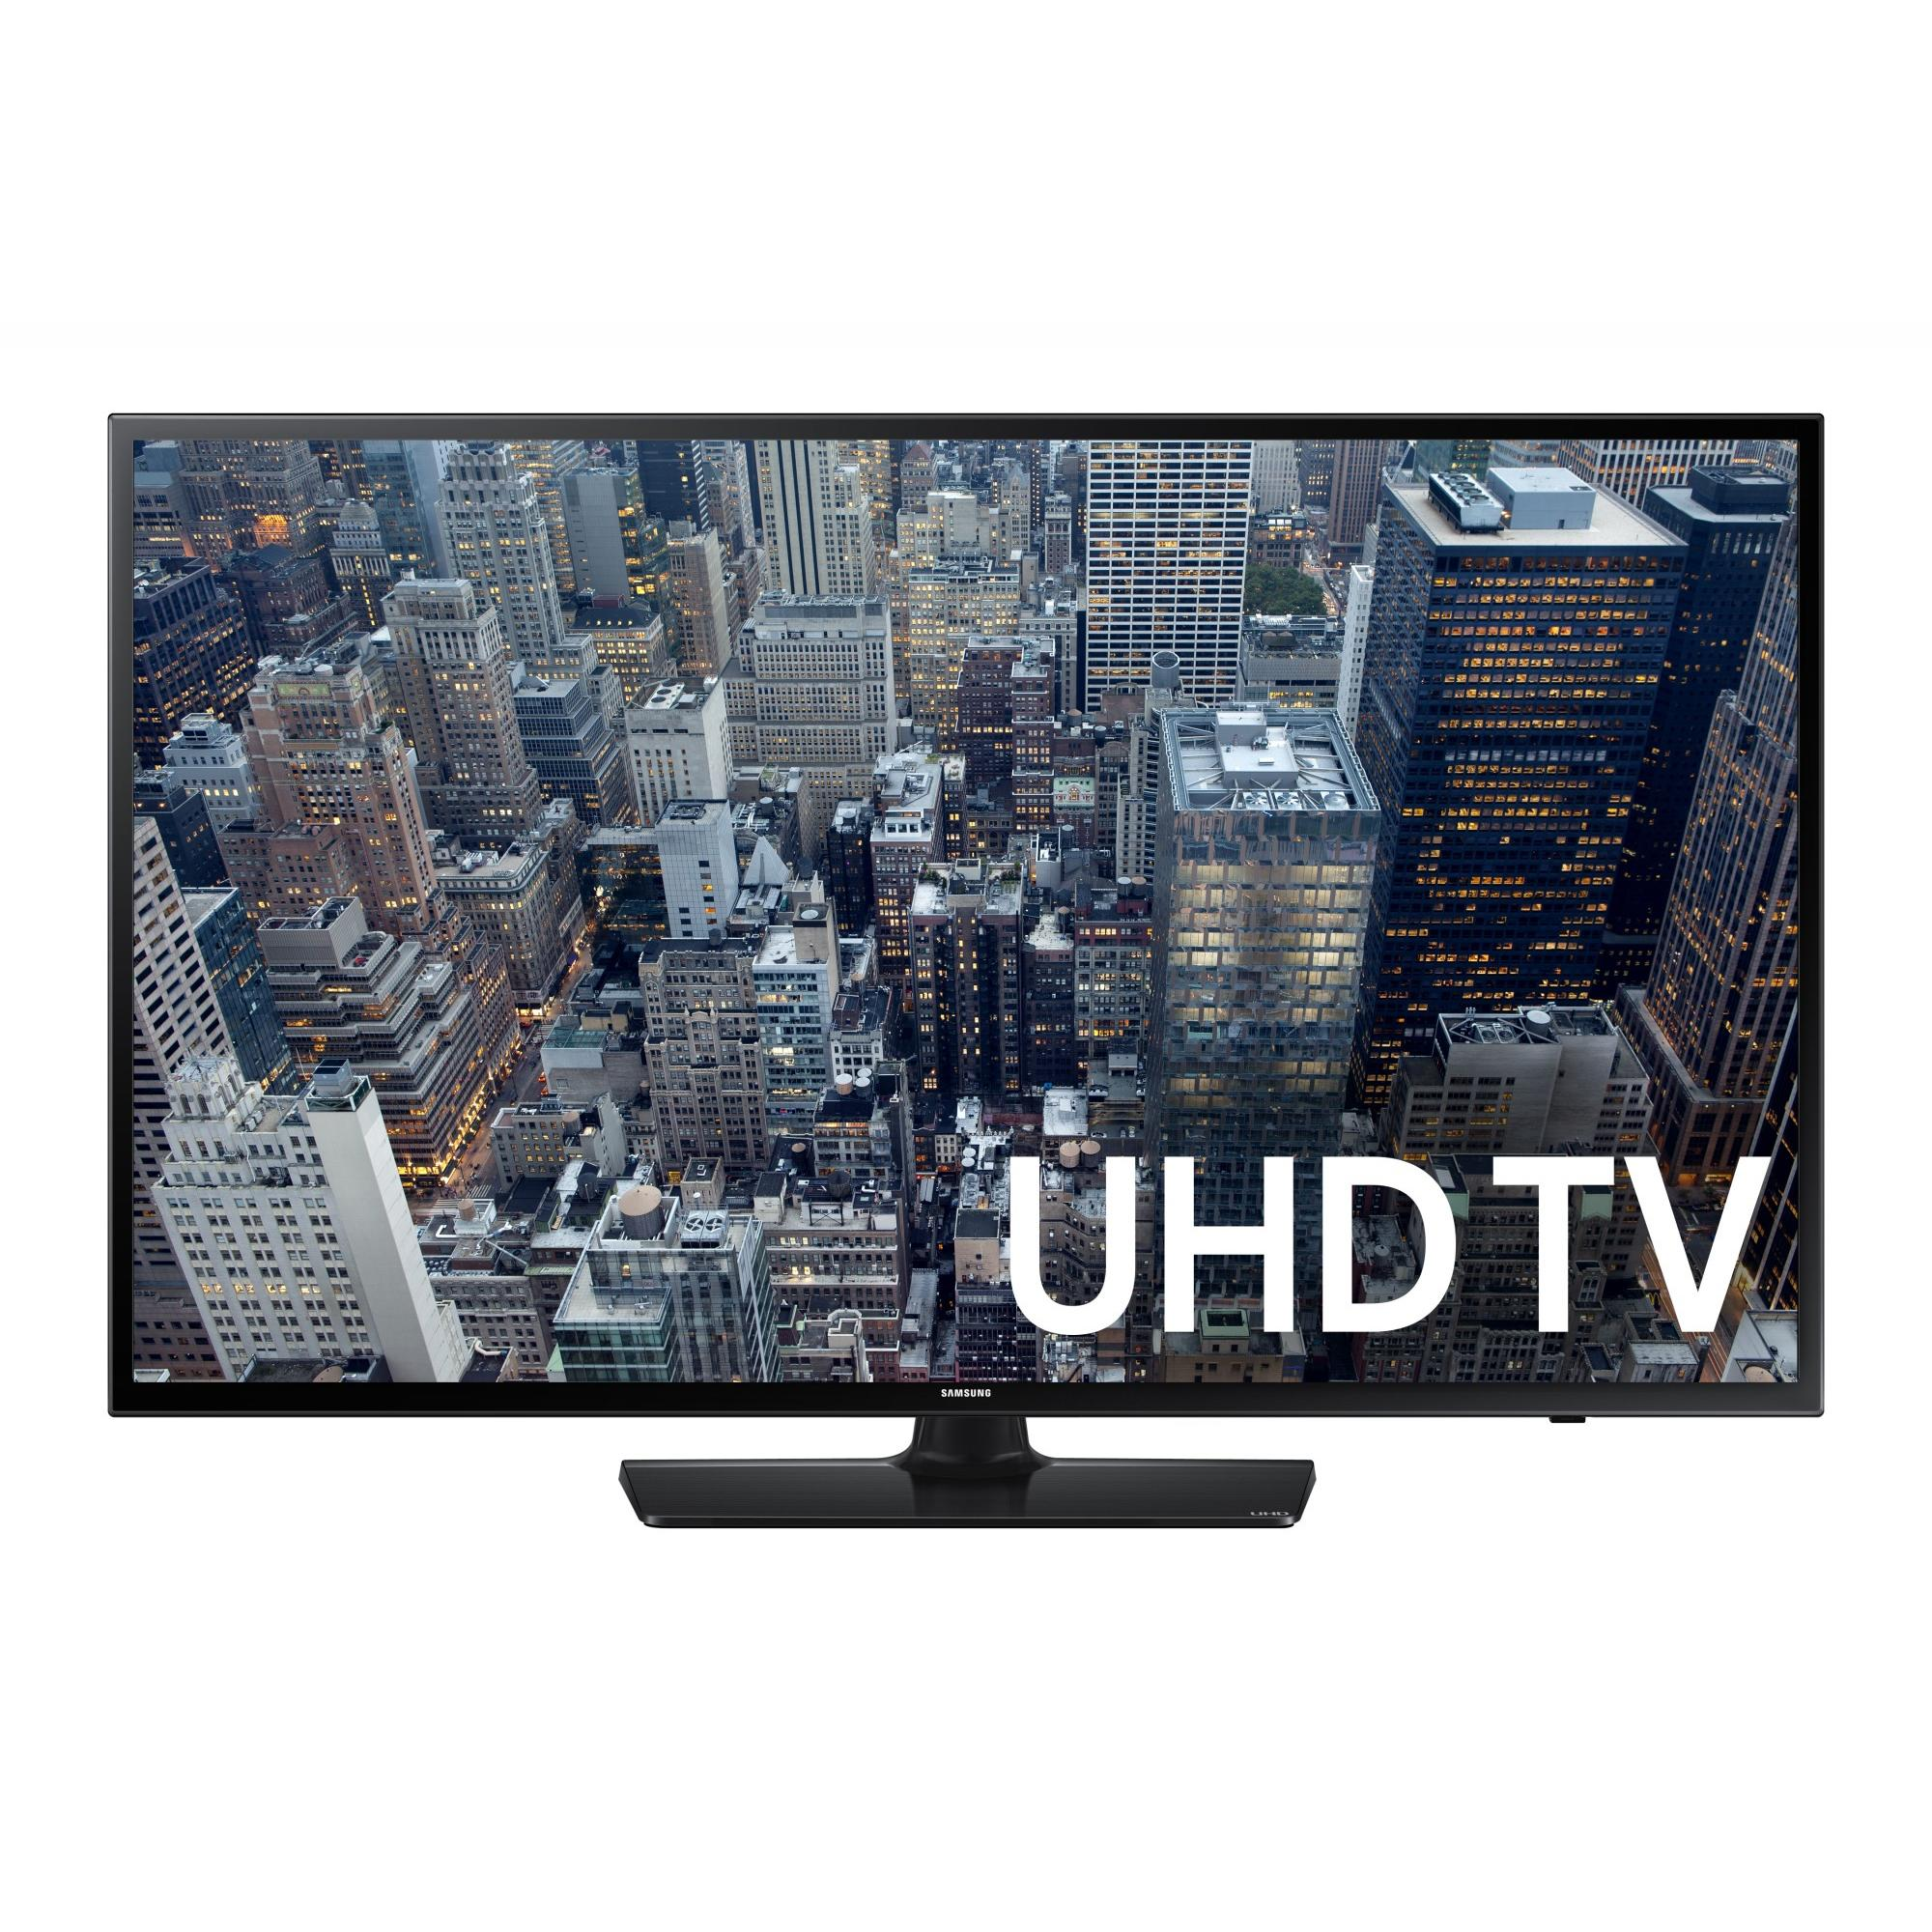 Samsung 55 Class 4k 2160p Ultra Hd Smart Led Tv Un55ju6400f